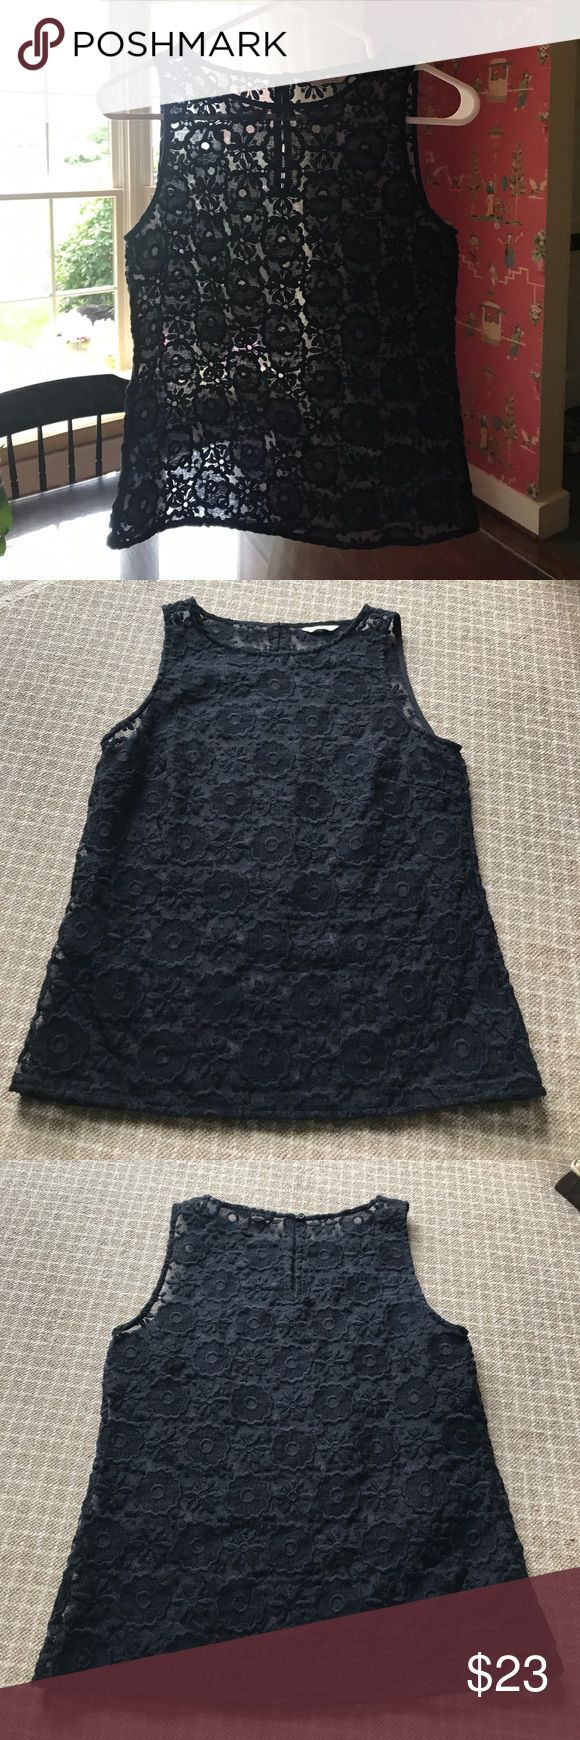 Black Tank Gorgeous dressy black sleeveless top! Subtle yet classic design makes this black top an interesting addition to any plain outfit! Perfect for work, dinner dates, or parties! Excellent like new condition. Jack Wills Tops Tank Tops